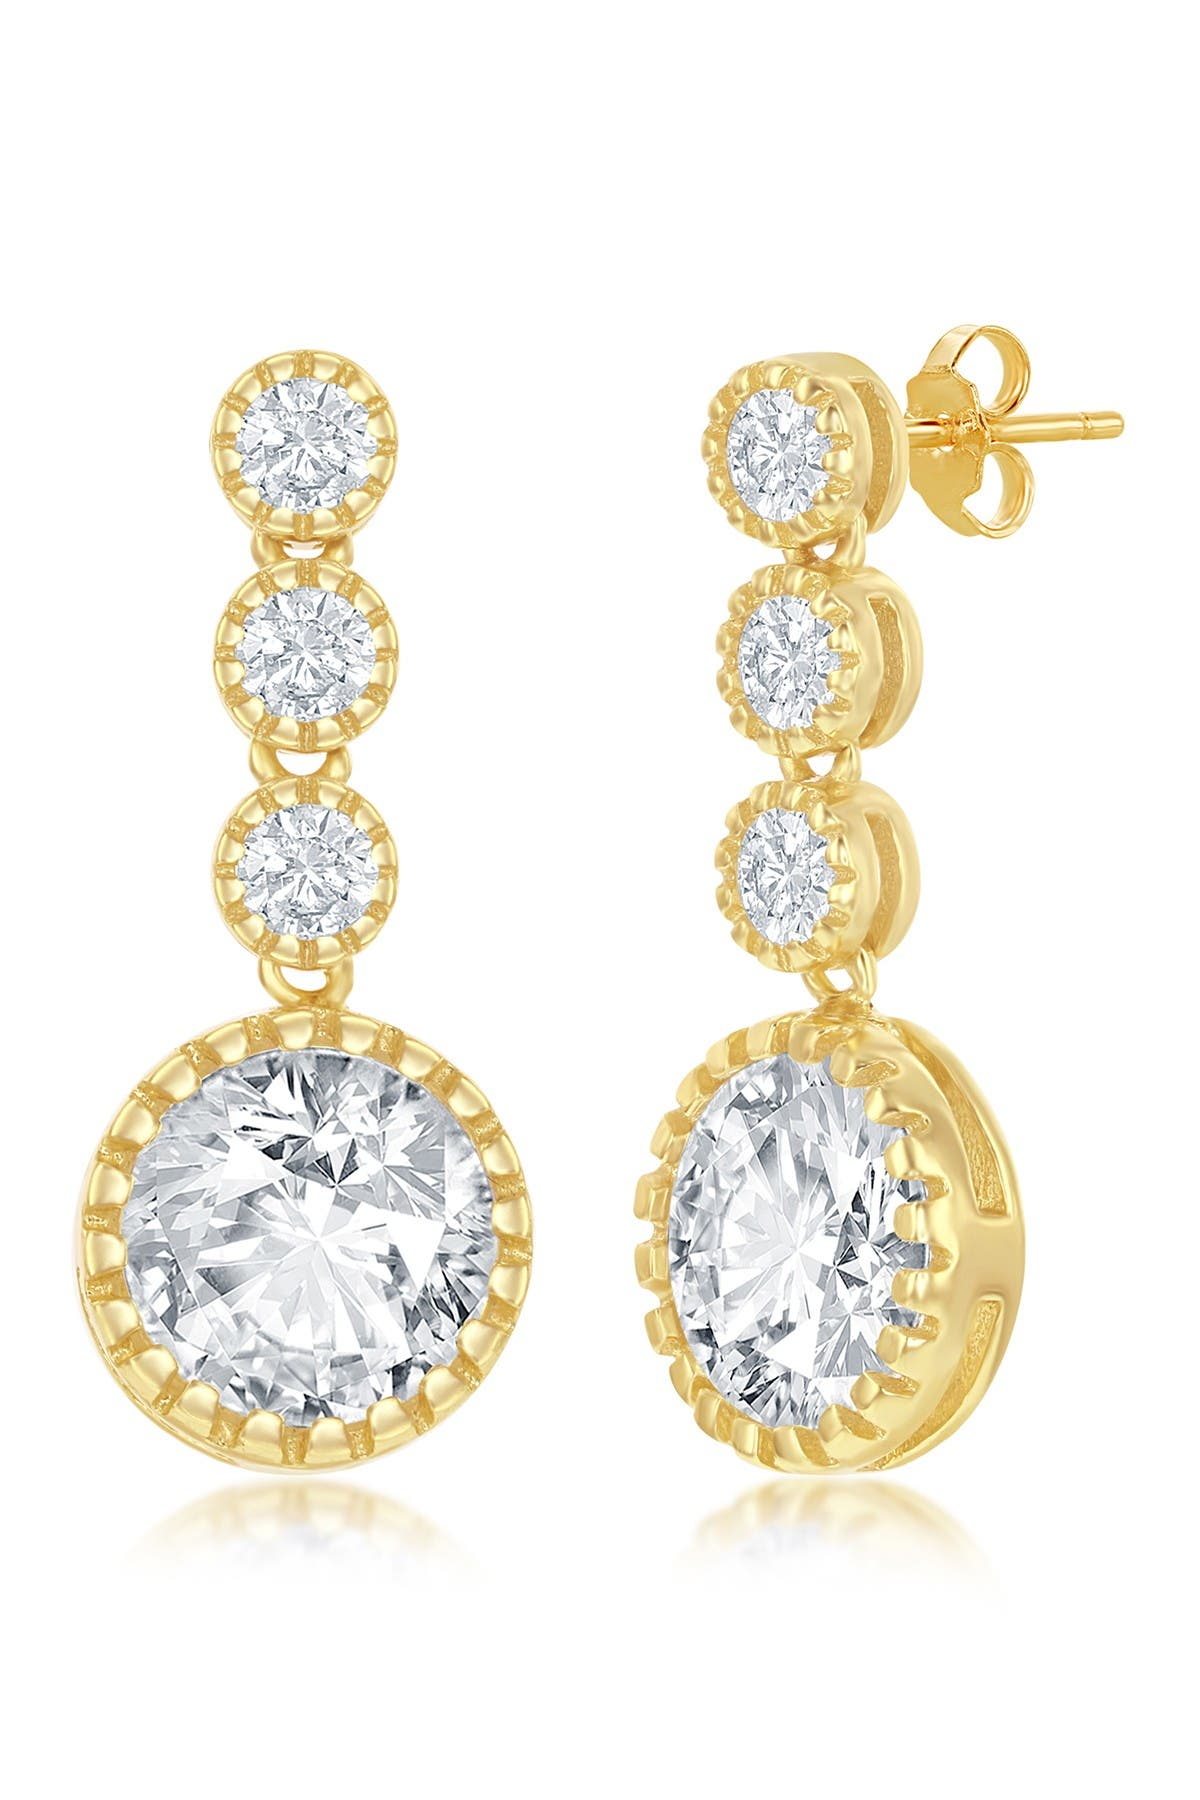 Image of Simona Jewelry 14K Yellow Gold Plated Sterling Silver CZ Drop Earrings